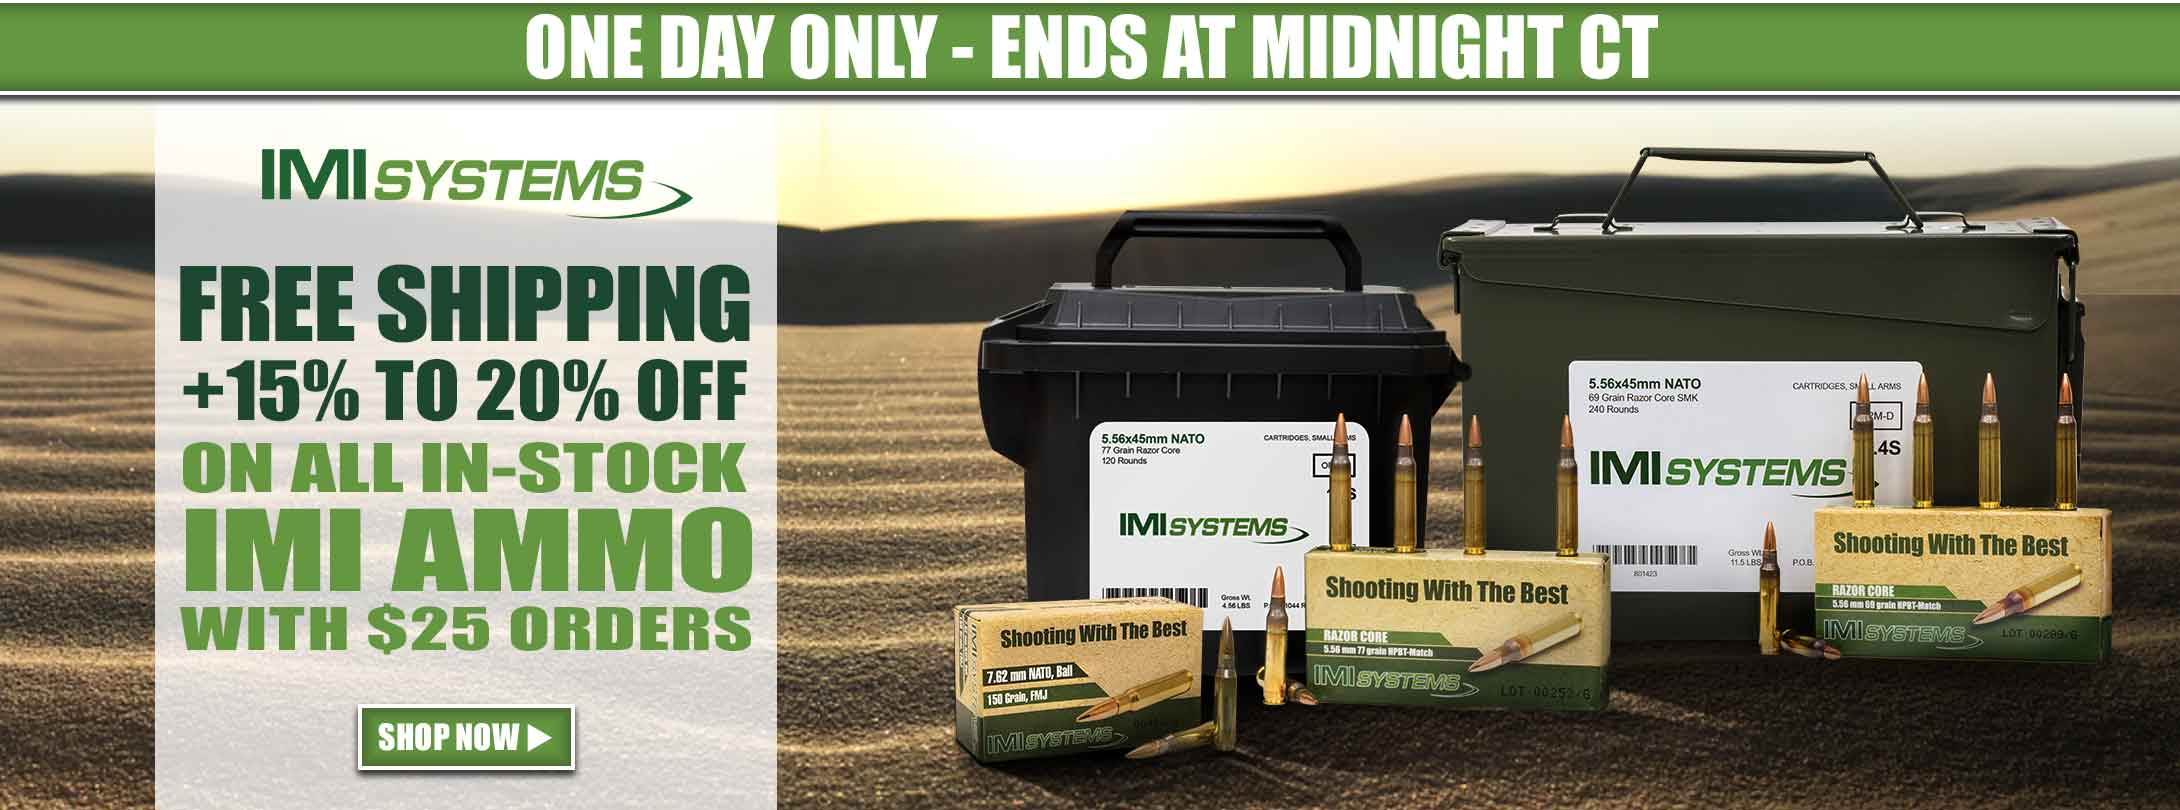 1 Day Only! 15% to 20% Off + Free Shipping on All In-Stock IMI Ammo with $25 Order